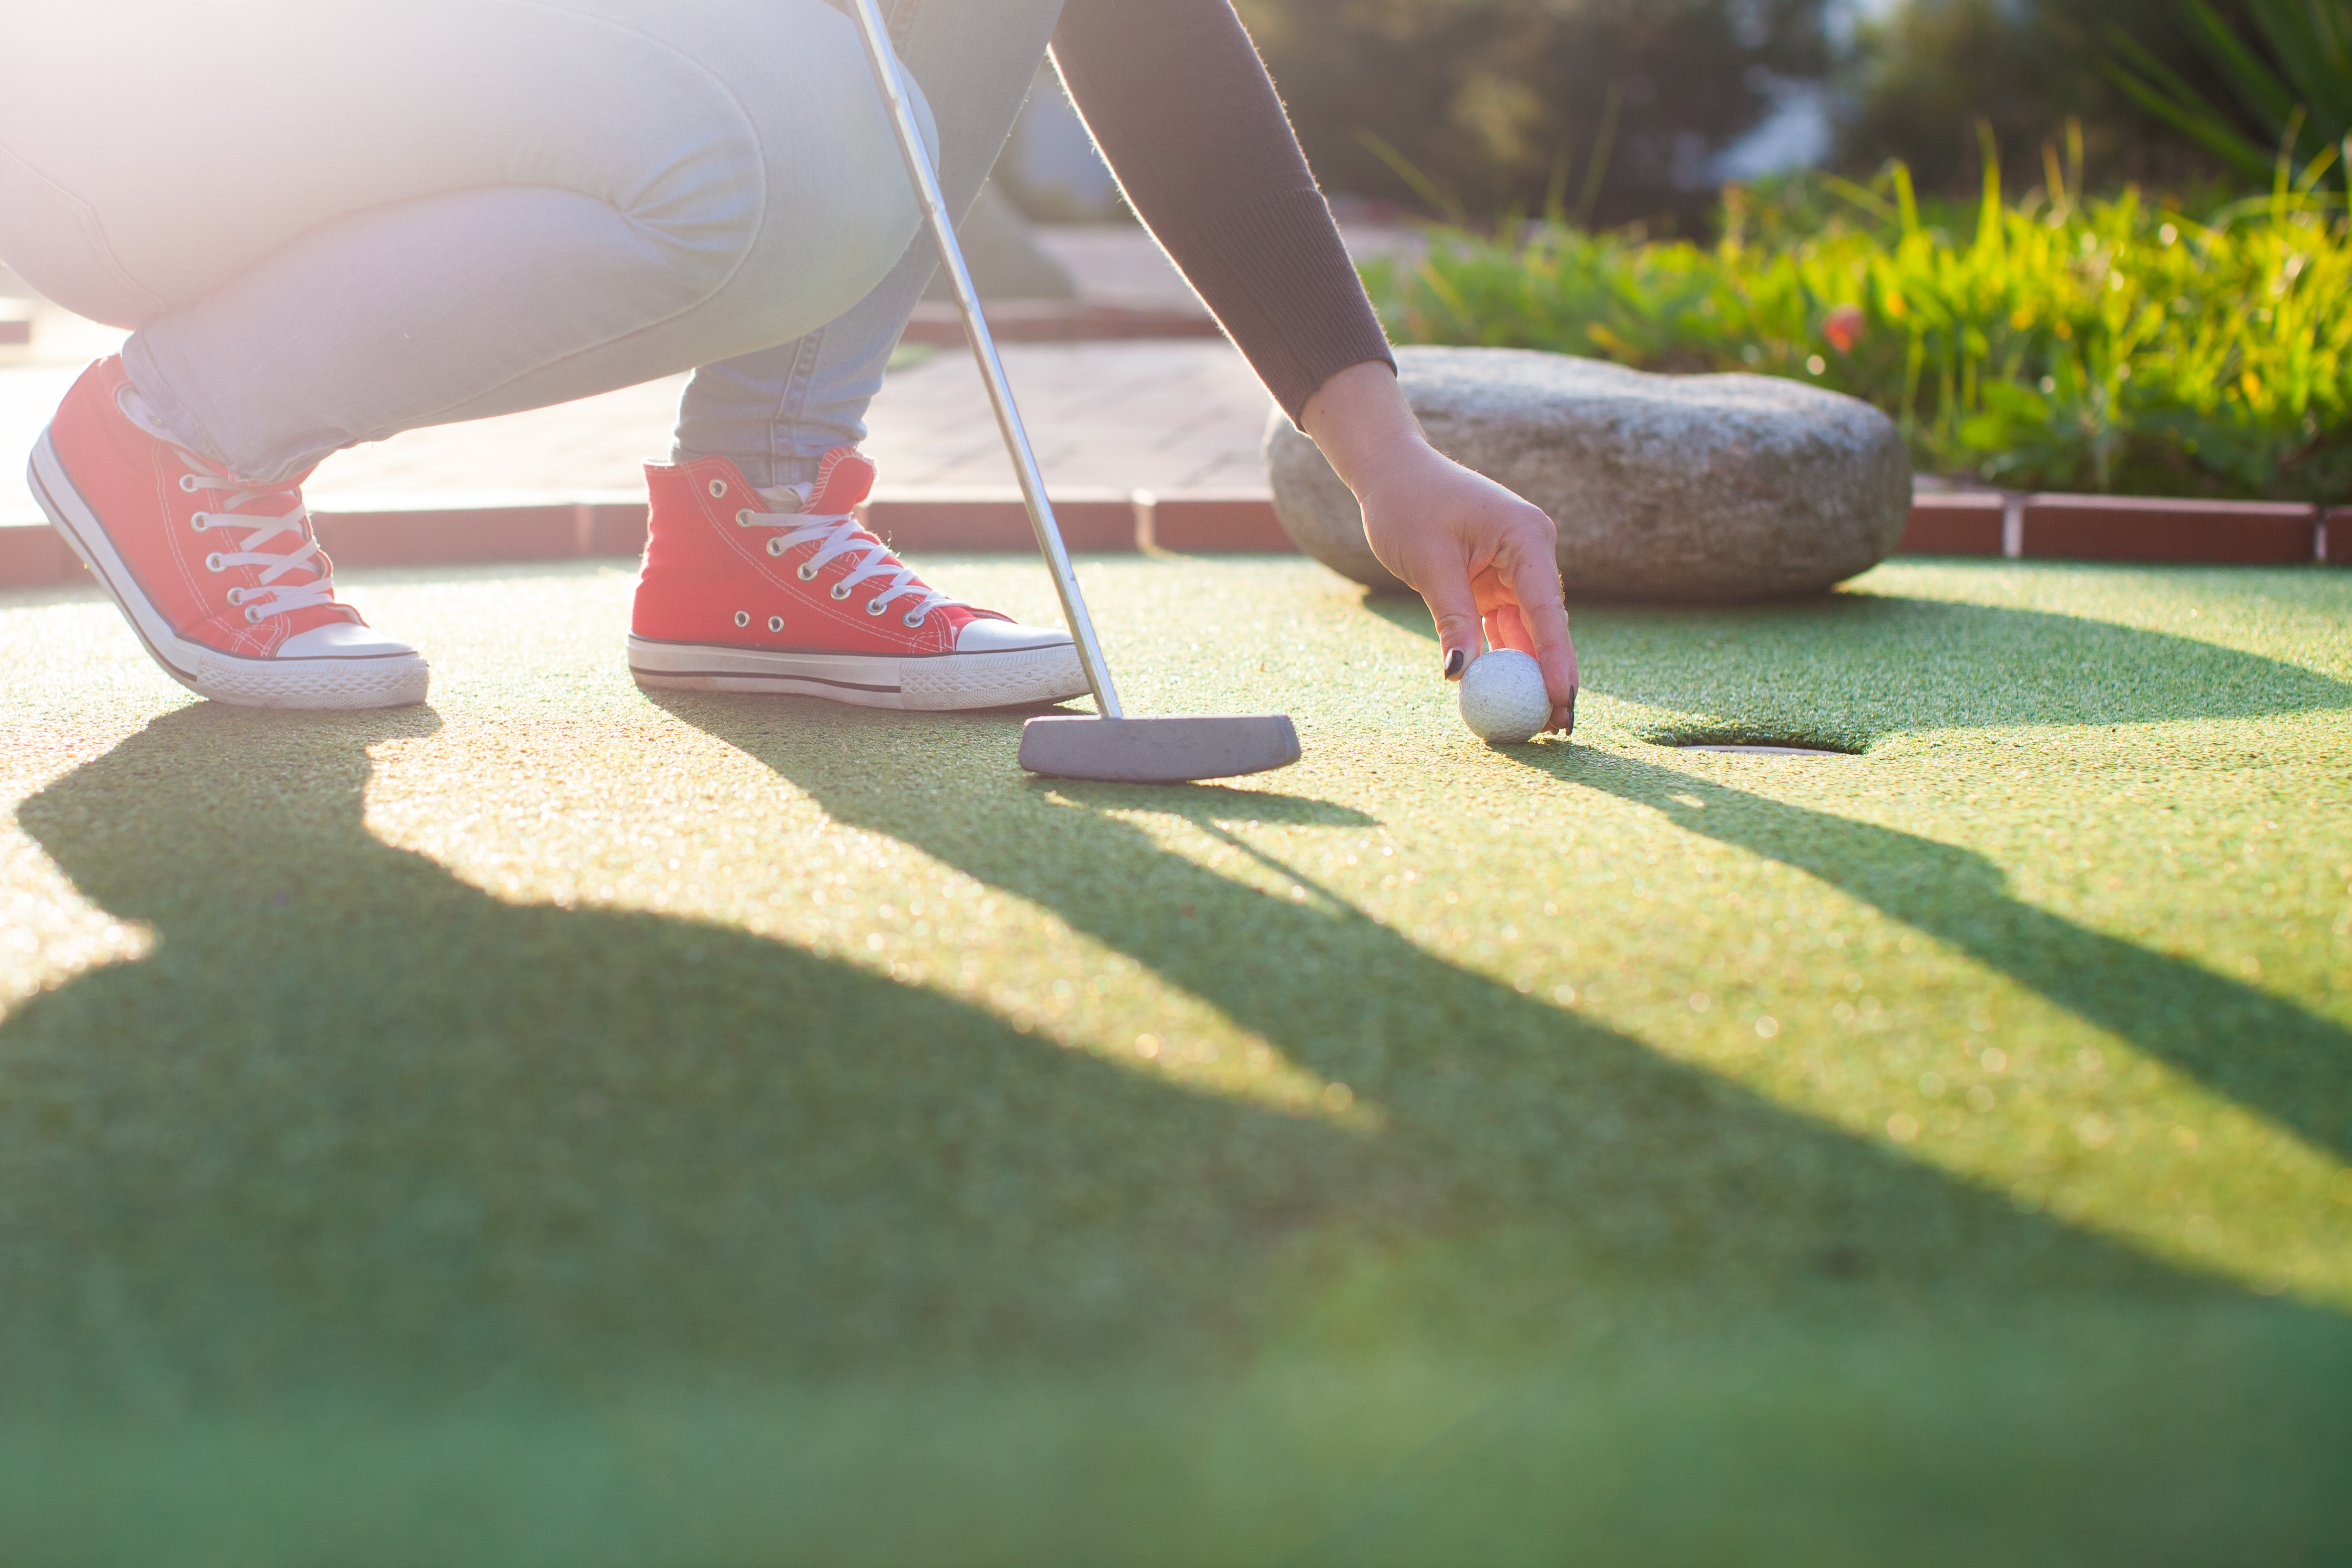 Our Entertainment Centre offers putt-putt and other family friendly activities